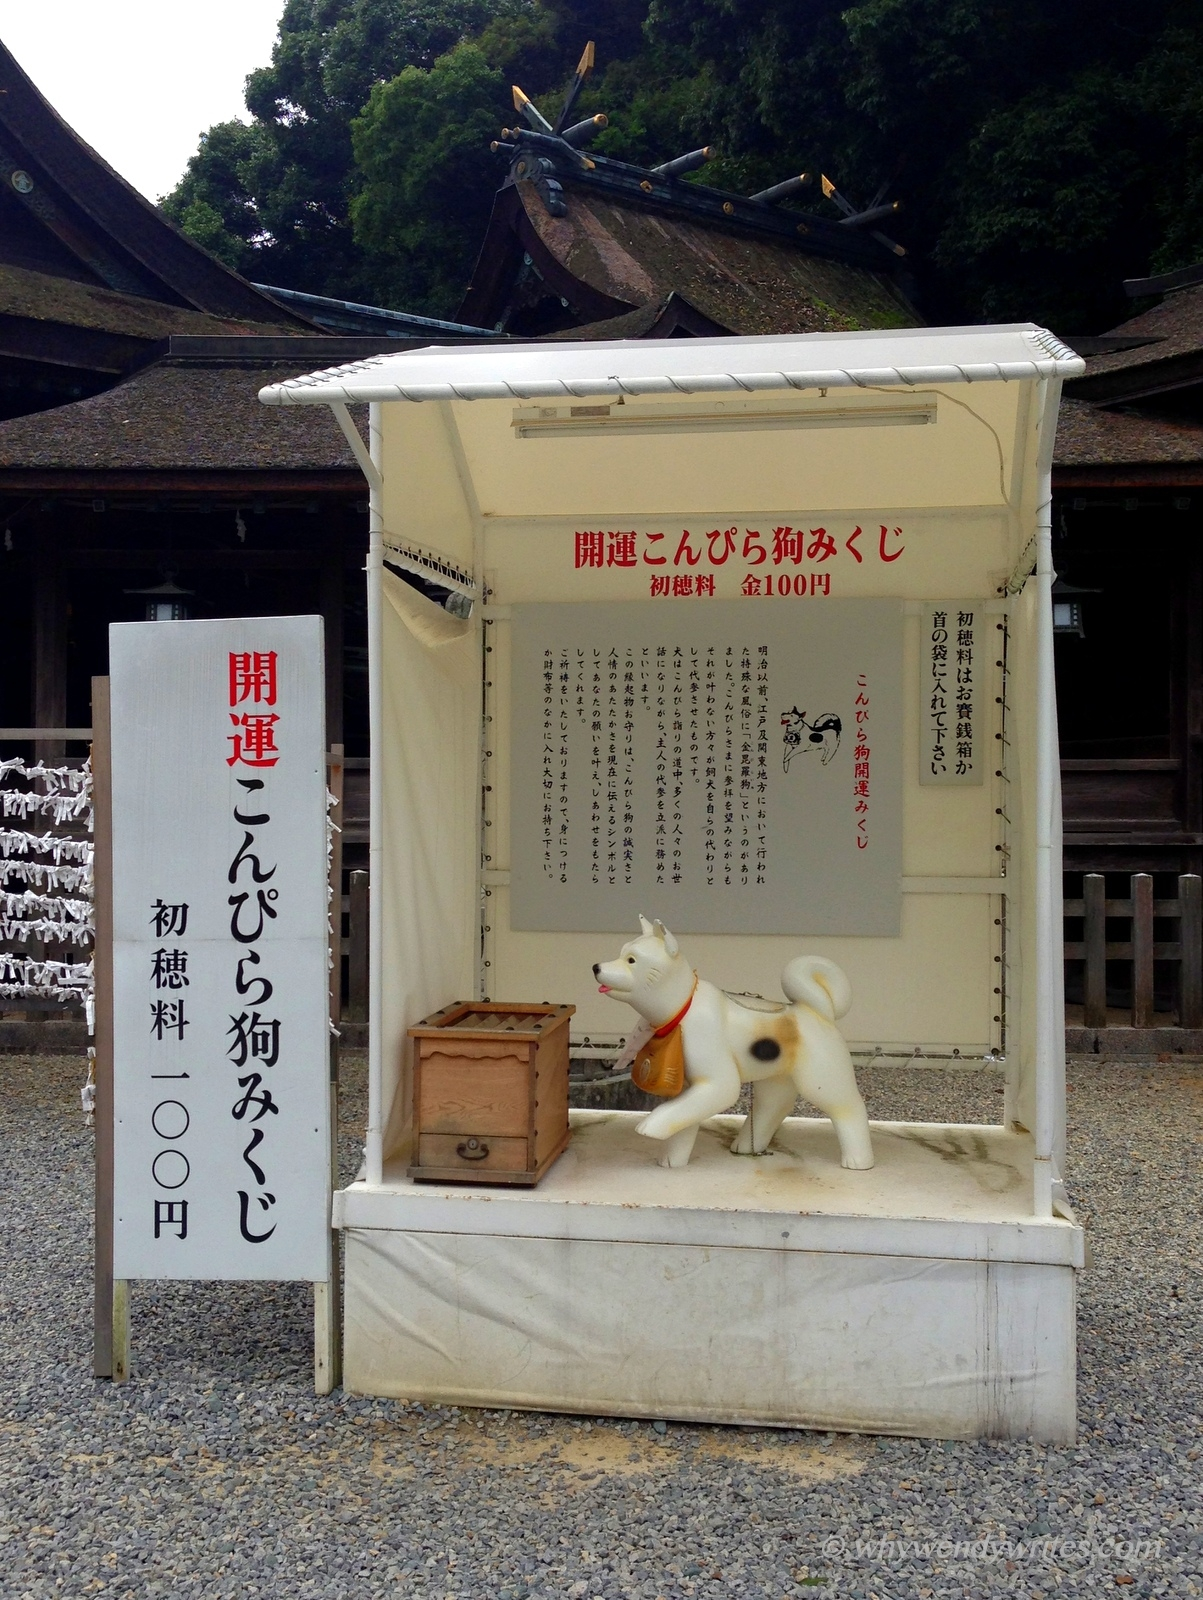 Konpira Inu – special dogs who climbed the steps for their owners